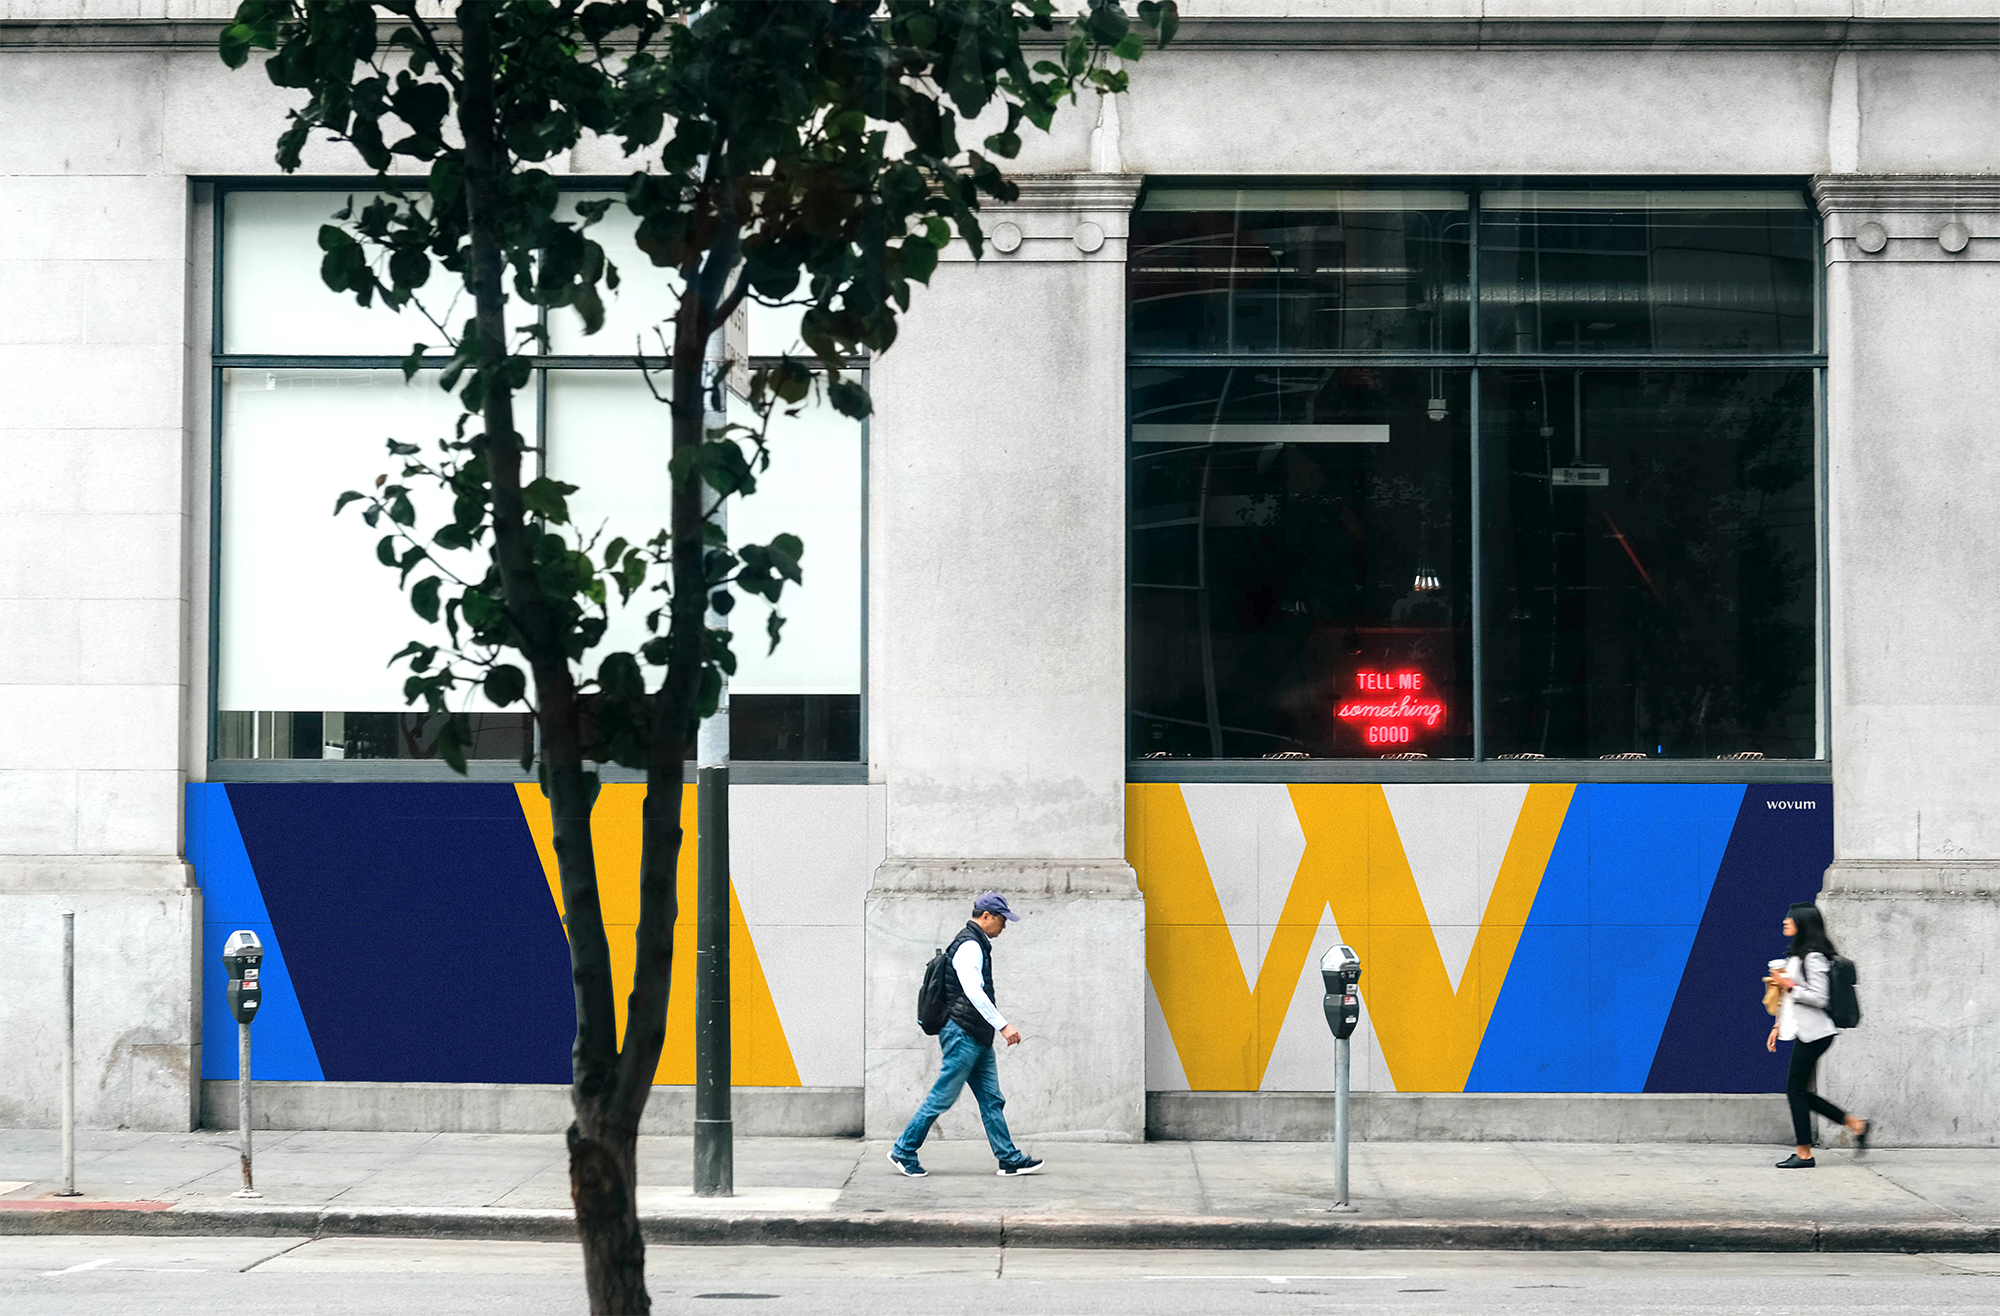 The image shows a photograph of wovum posters in an urban setting.